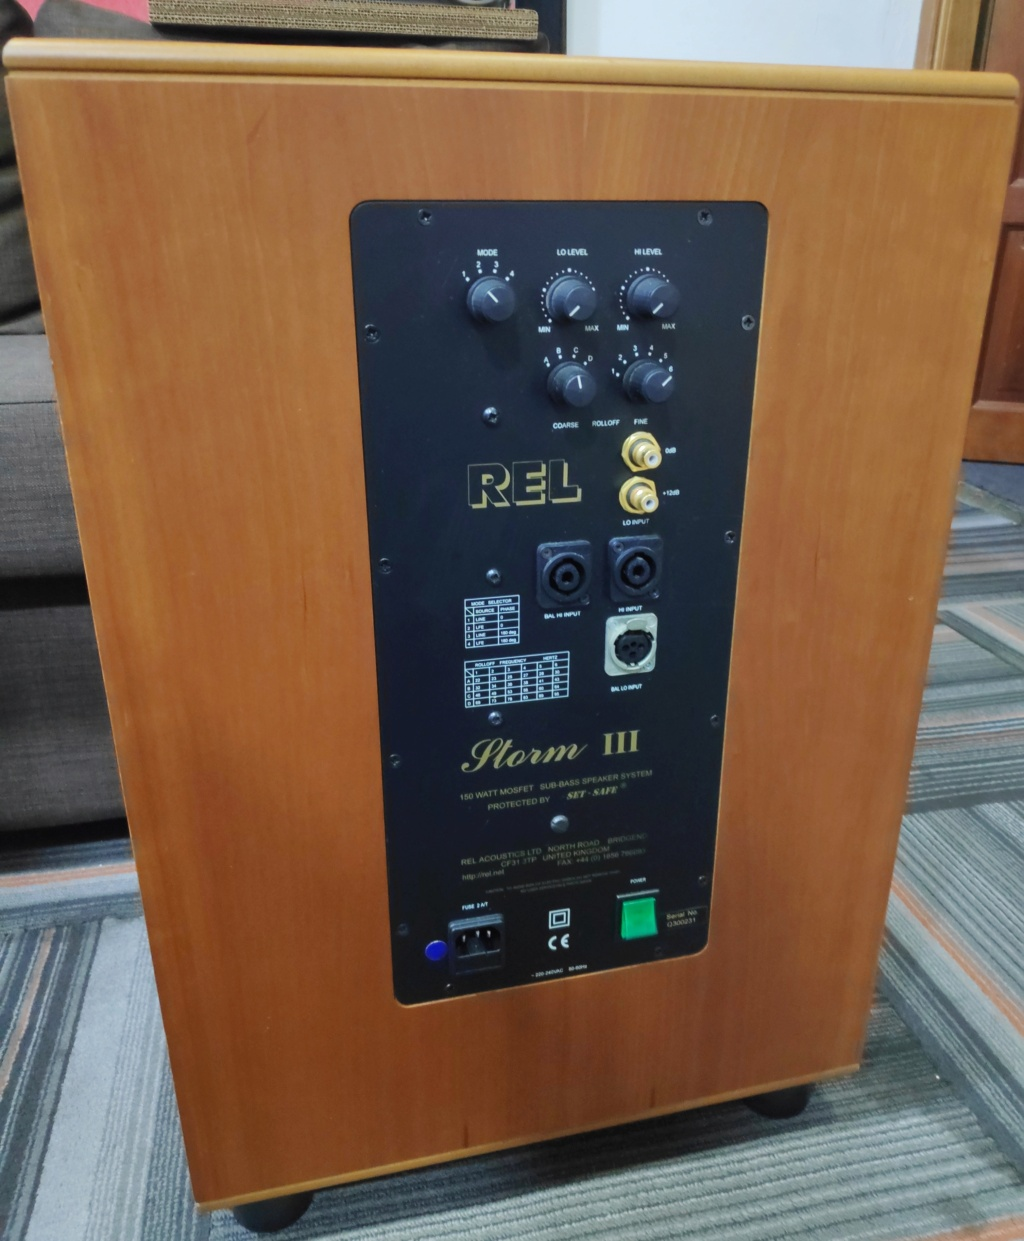 """Rel Storm III 10"""" Subwoofer (USED) Img_2098"""